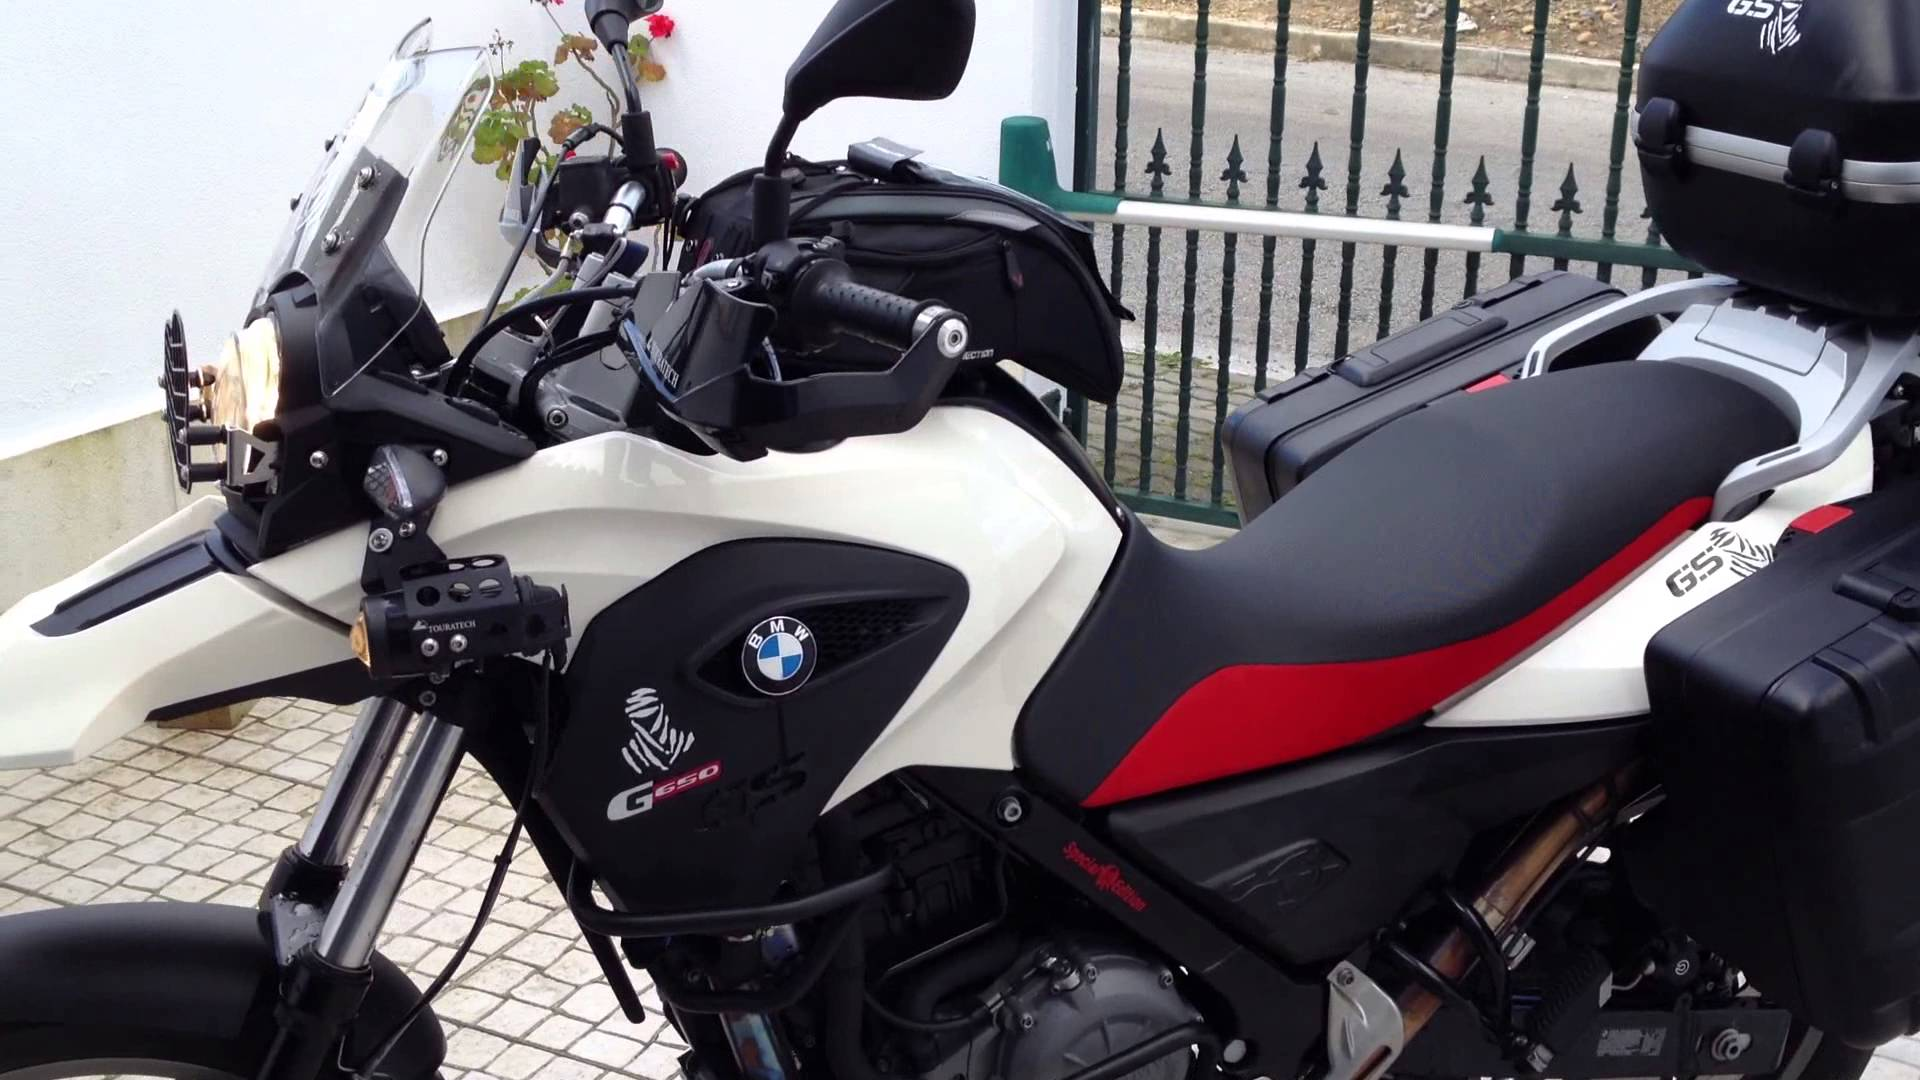 BMW G 650 GS images #8393